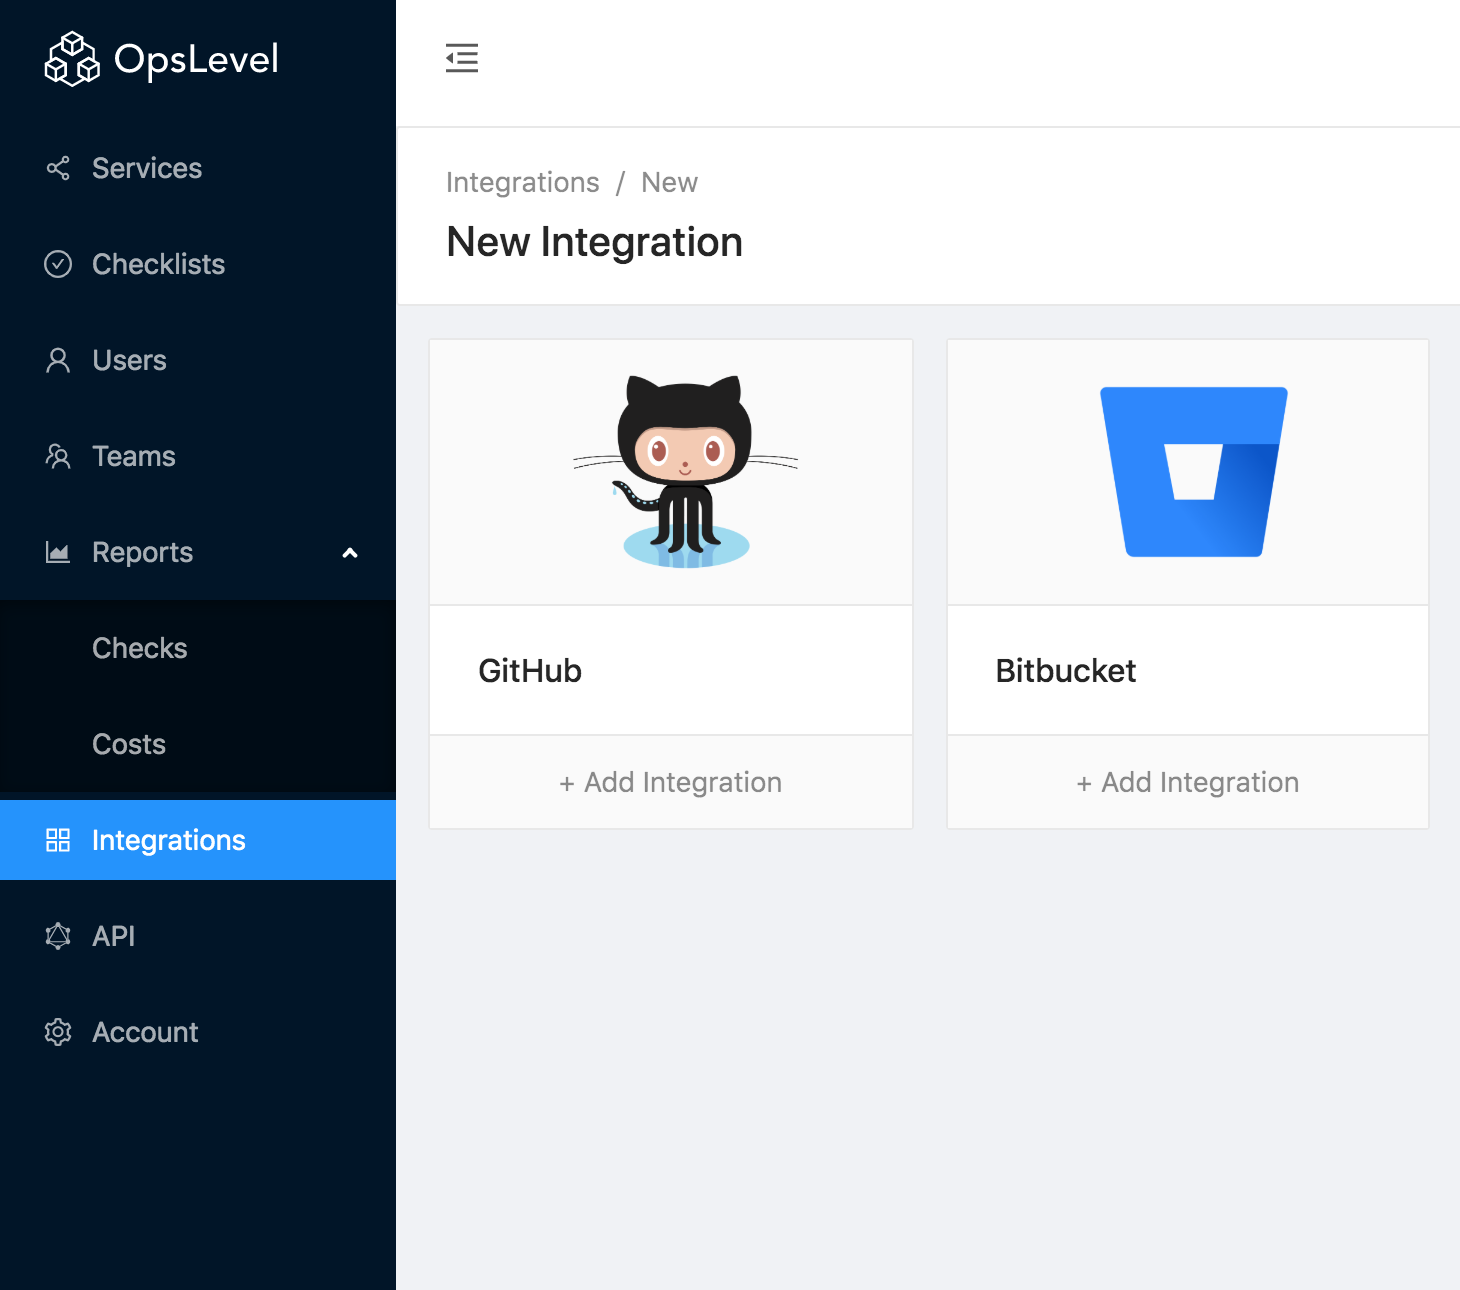 Check code within GitHub or Bitbucket